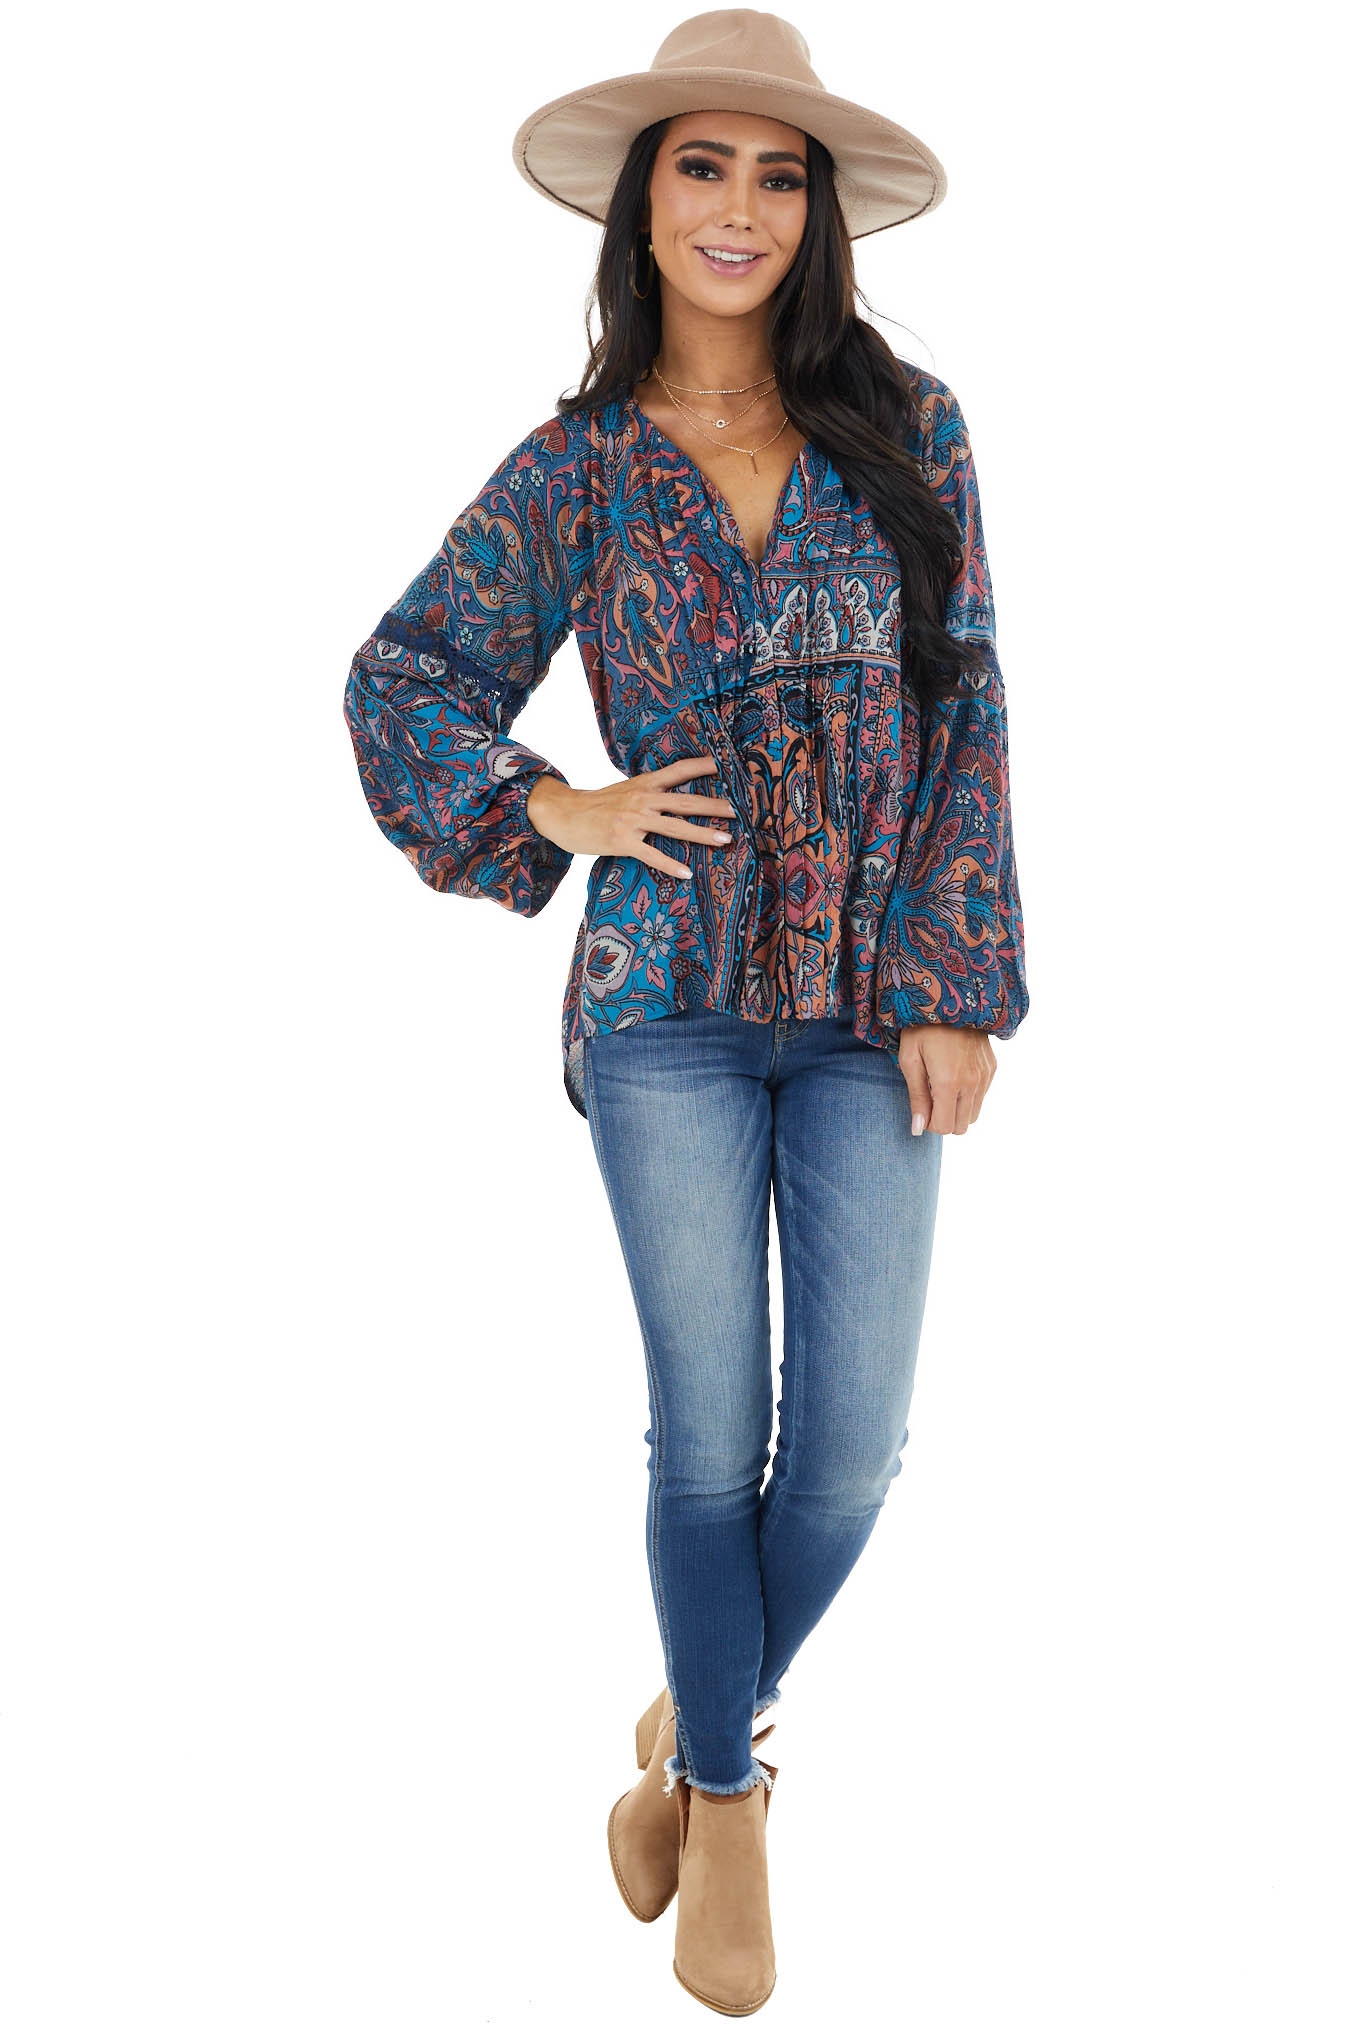 Ocean Blue Floral Button Up Top with Long Bubble Sleeves